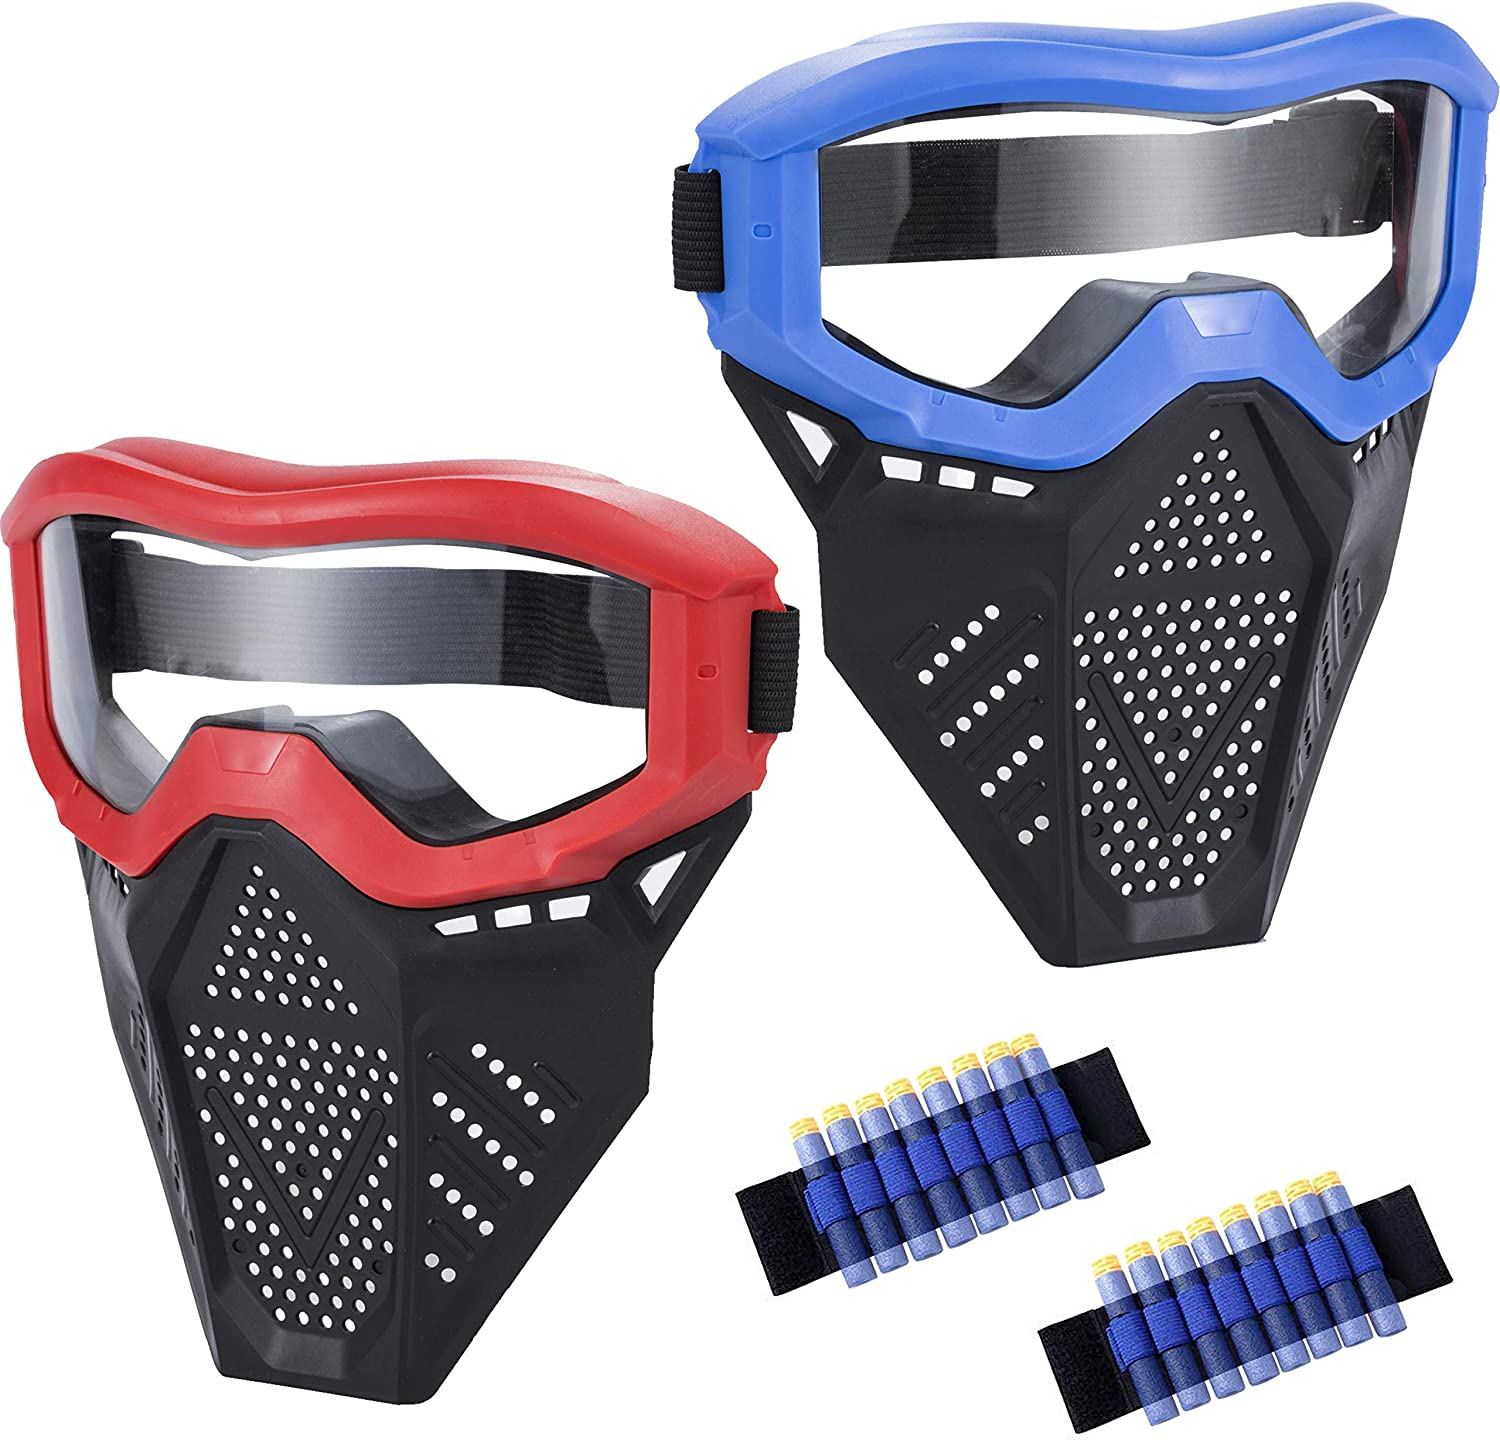 MeimoS 2 Pack Tactical Face Shield Mask Protective Goggles – Eye Protection for Kids Red and Blue - Compatible with Nerf Rival, Apollo, Zeus, Khaos, Atlas, Artemis, and N-Strike Elite Blasters (B&R)